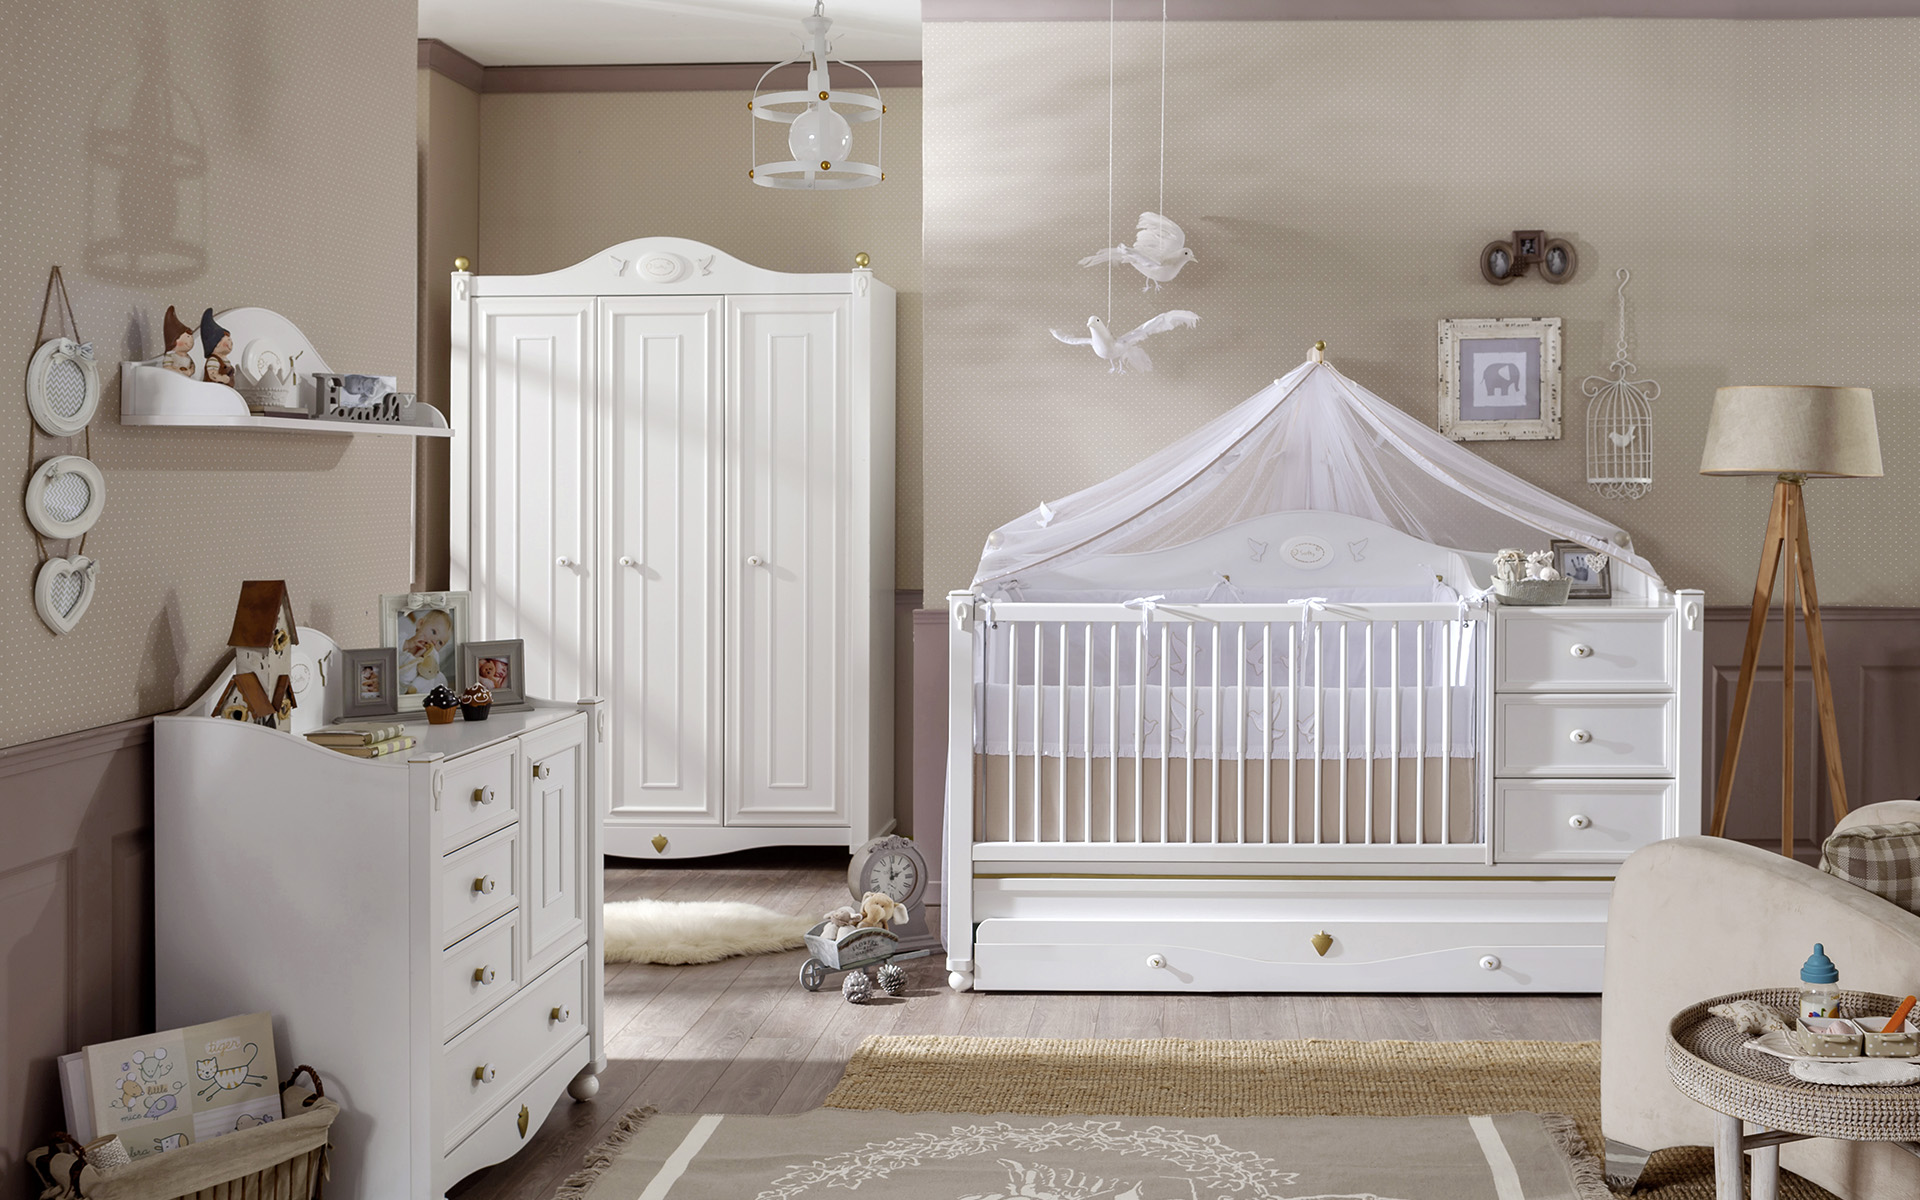 decoration chambre bebe fille idee tapis sol